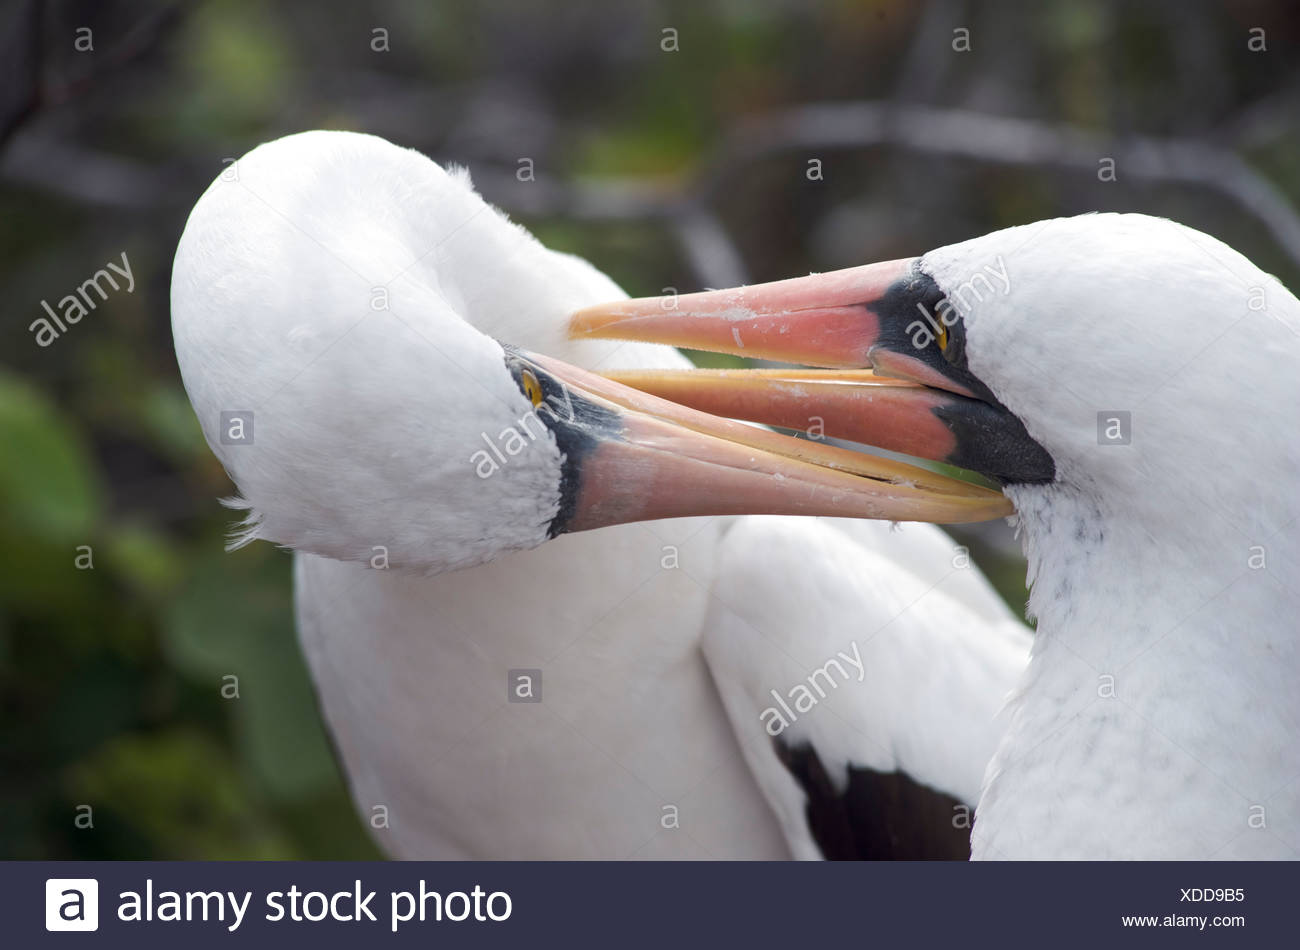 Nazca Booby birds.  Pair on ground nest bonding and grooming in close up. Espanola Island, Galapagos Islands, Pacific. - Stock Image